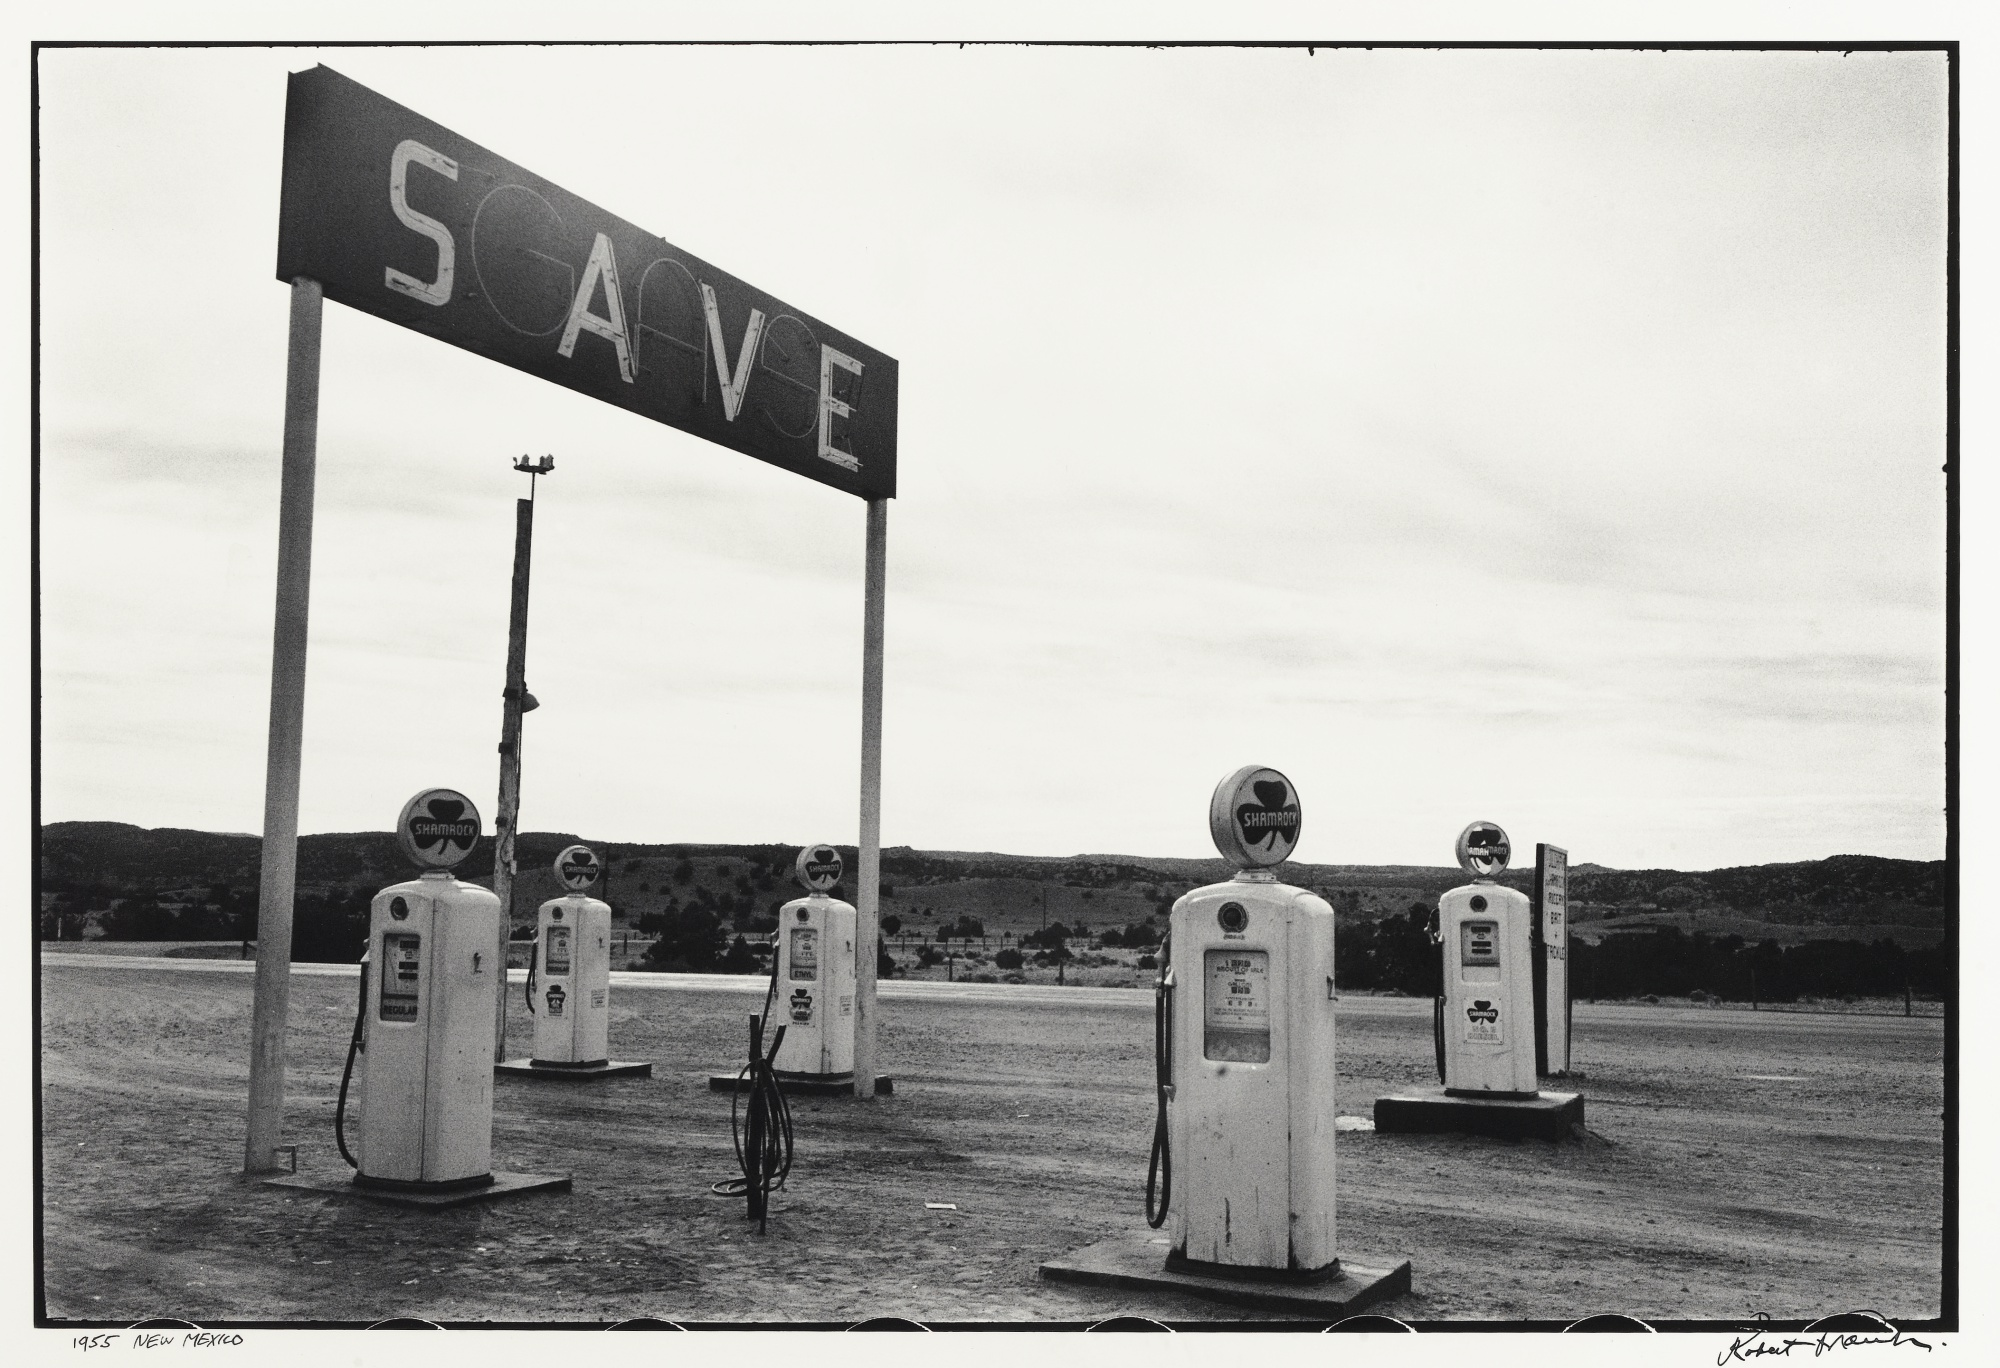 Robert Frank-New Mexico-1955